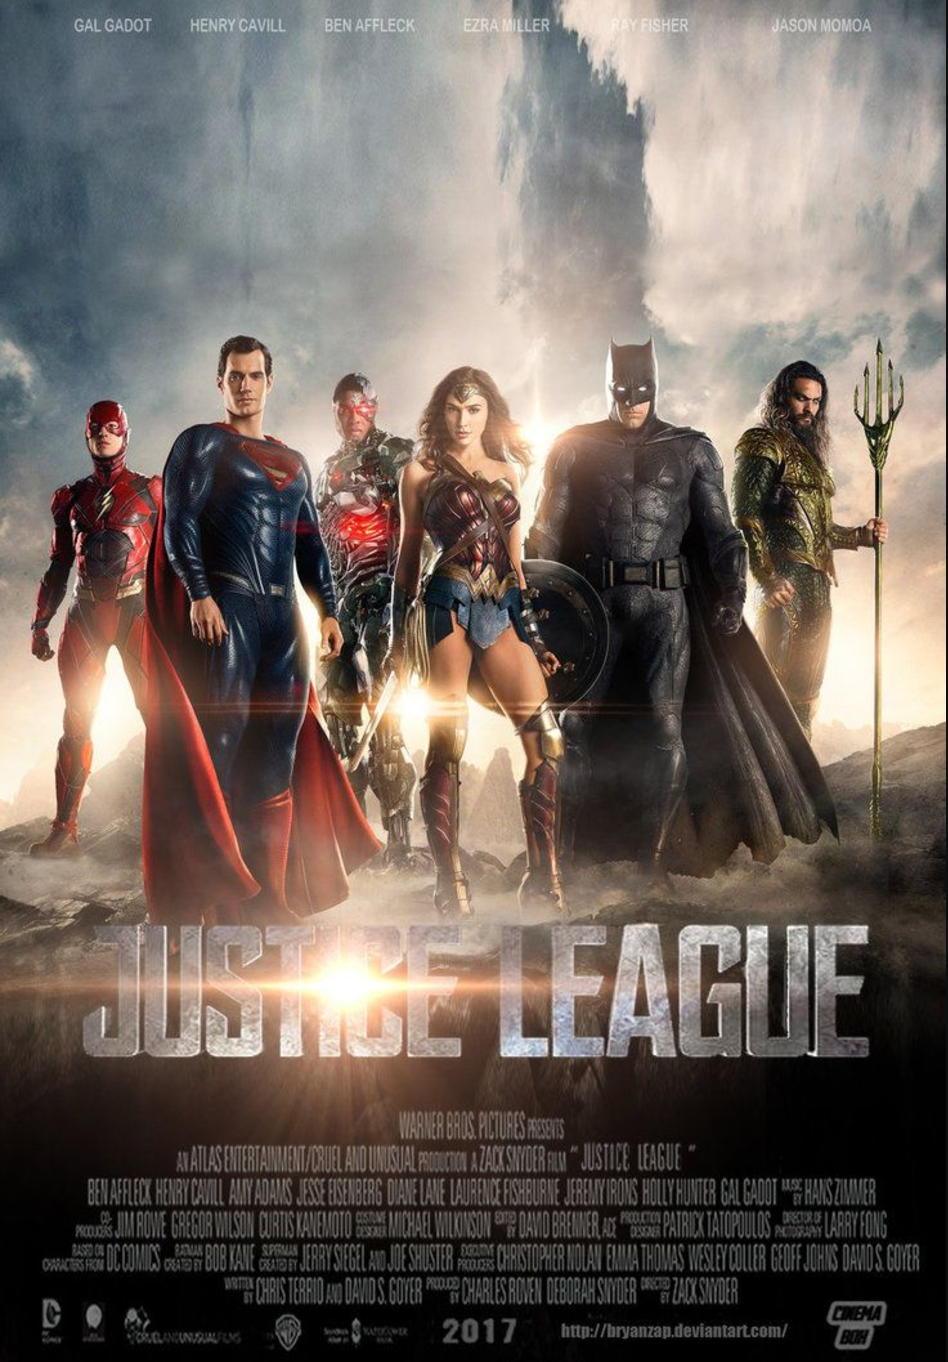 Warner Brothers publicity poster 2017.